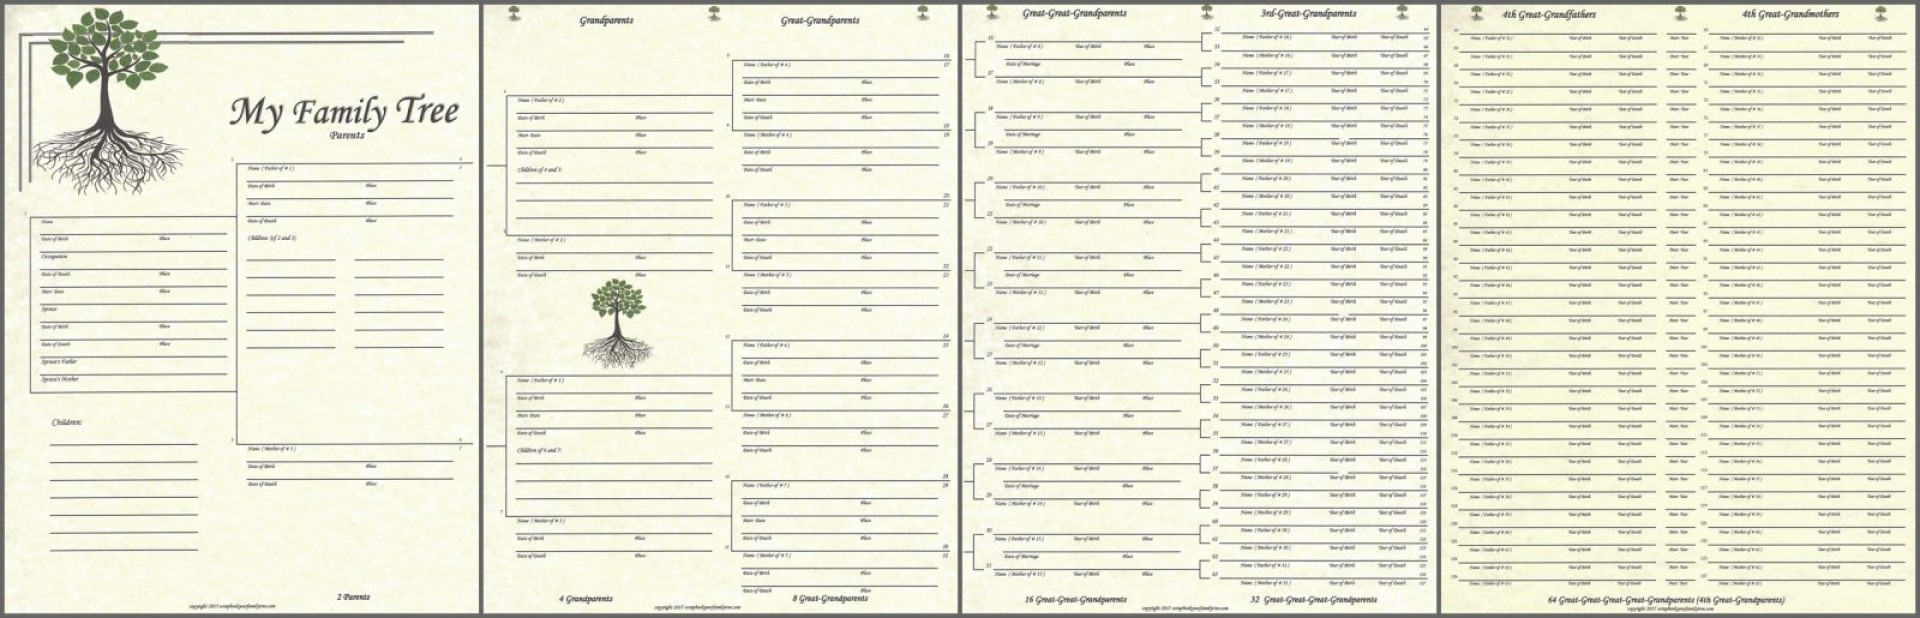 009 Excellent 7 Generation Family Tree Template Sample  Blank Free Editable1920